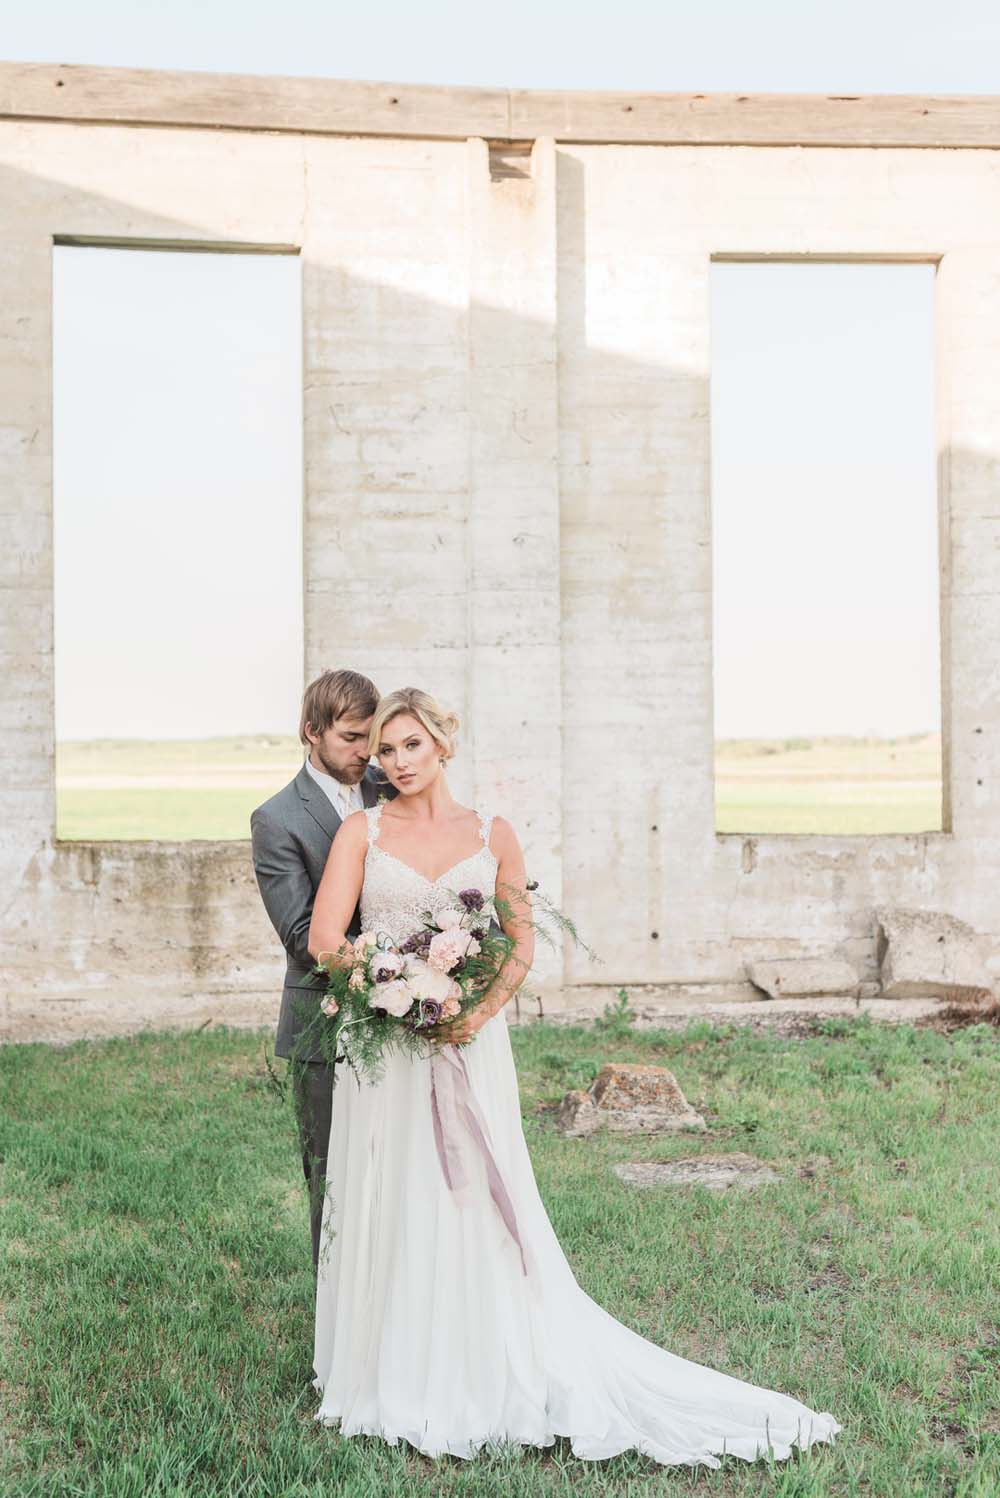 A Romantic Themed Shoot Inspired by Ruins - Couple